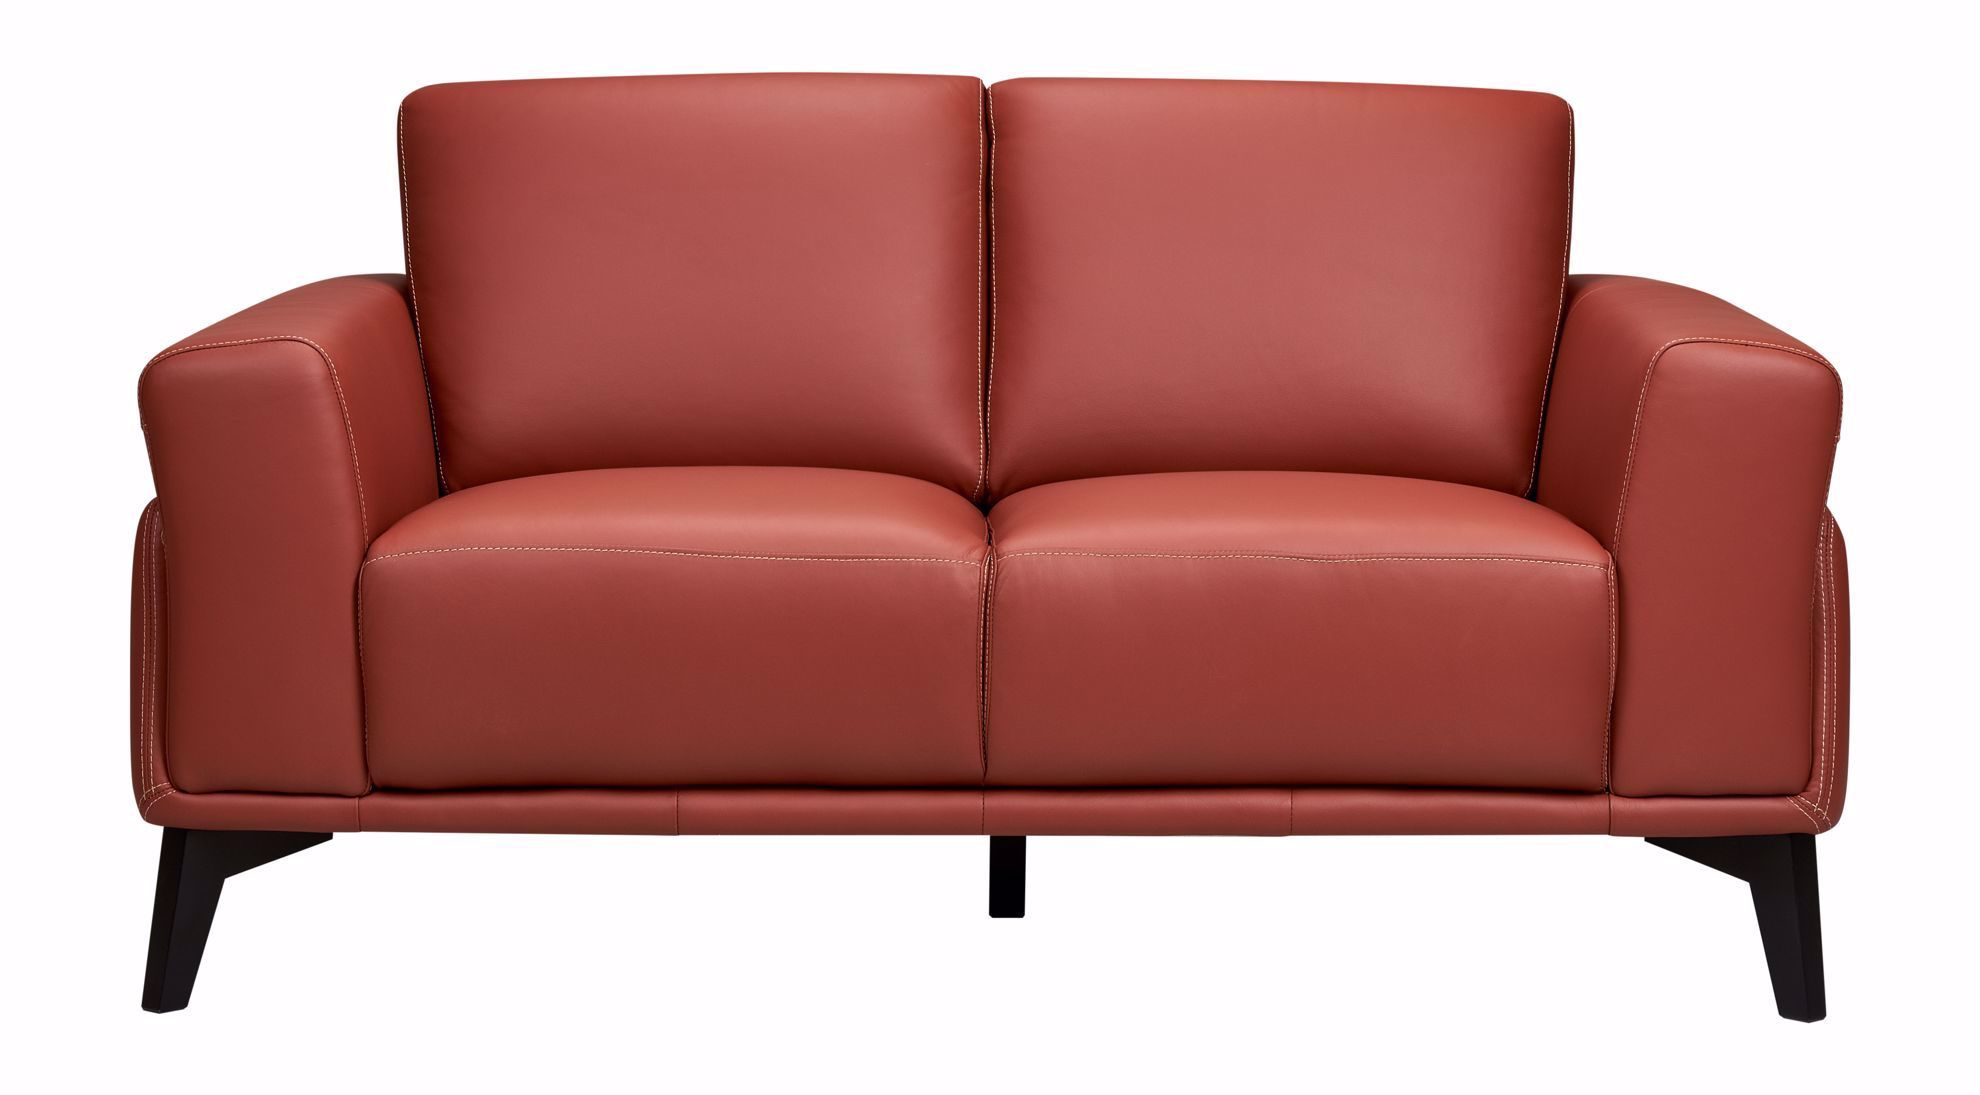 Picture of Como Terracotta Leather Loveseat